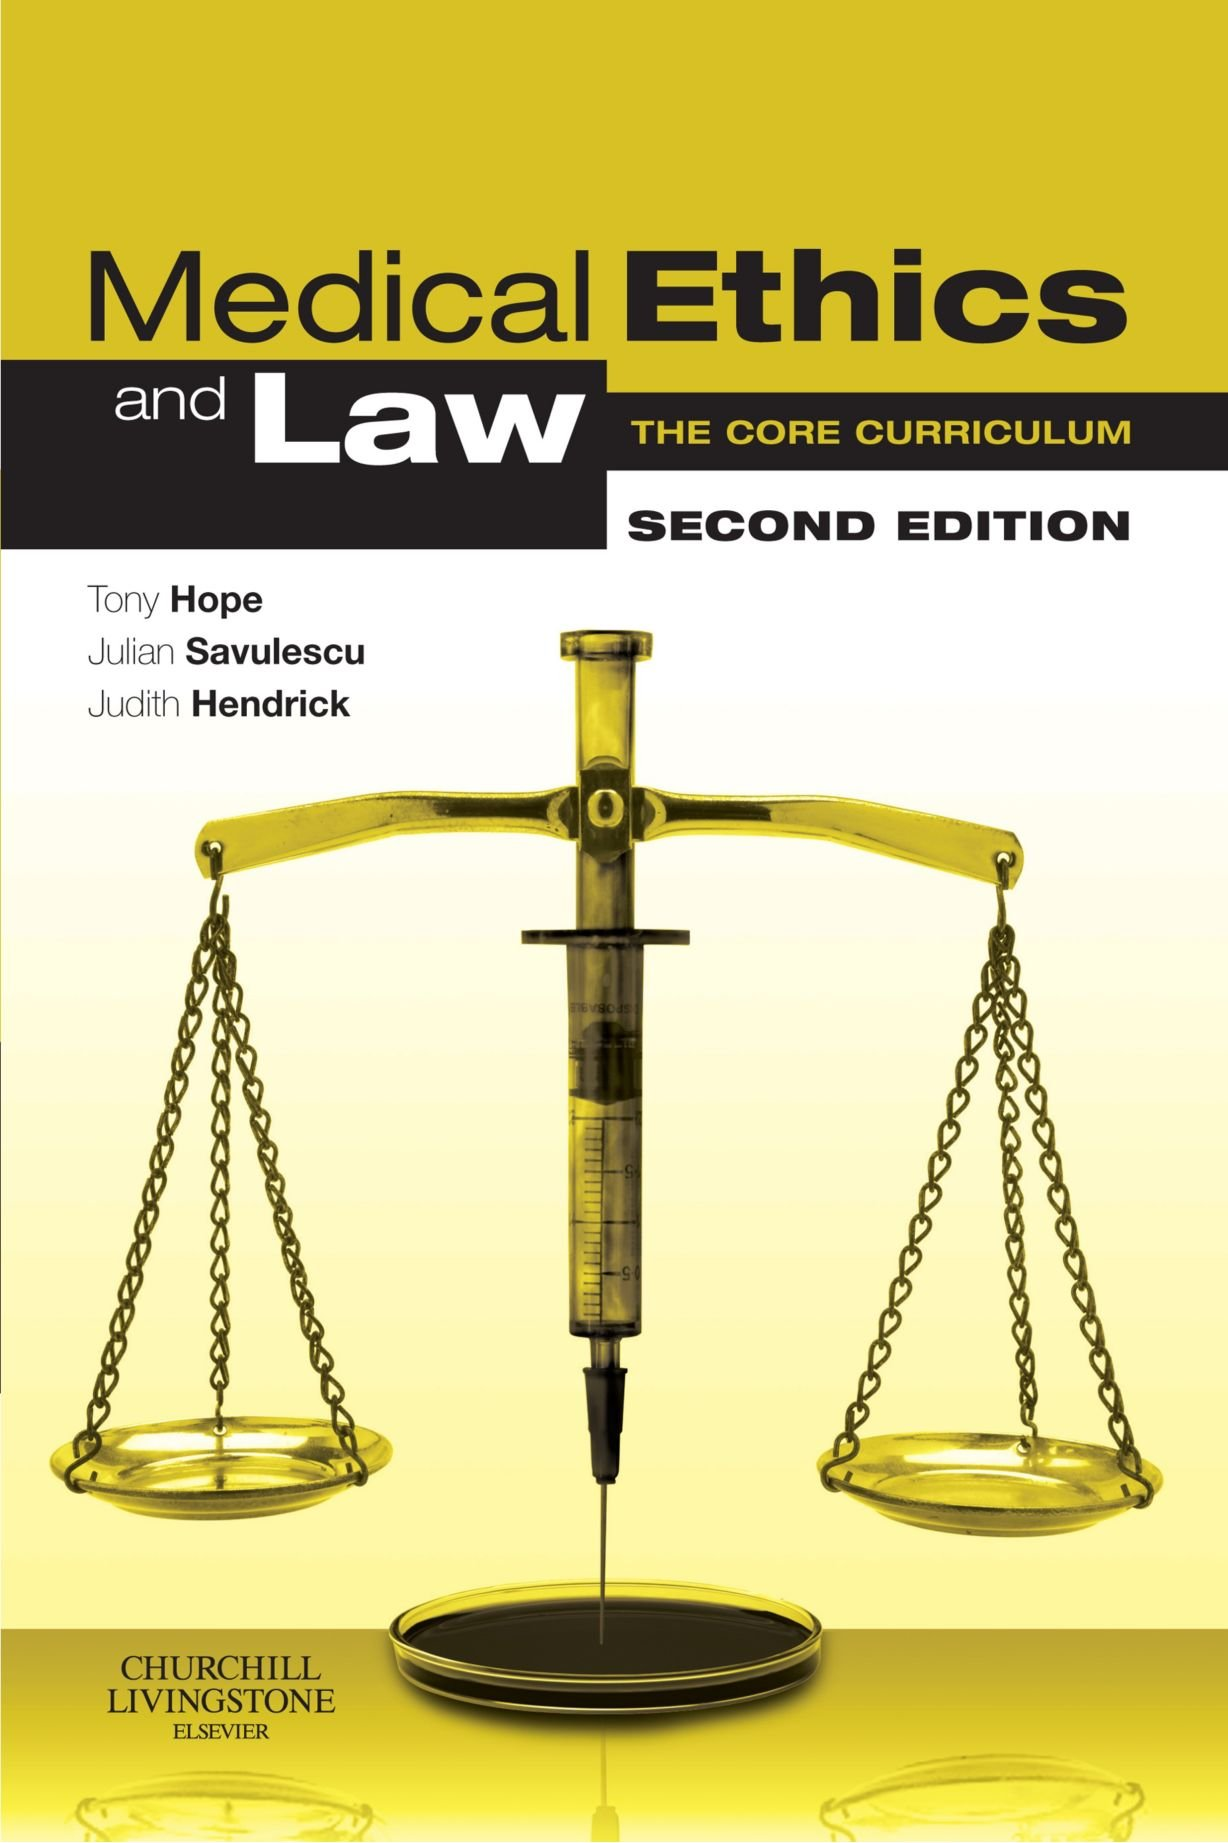 Medical Ethics And Law, Second Edition: The Core Curriculum: Amazon:  Tony Hope: 9780443103377: Books